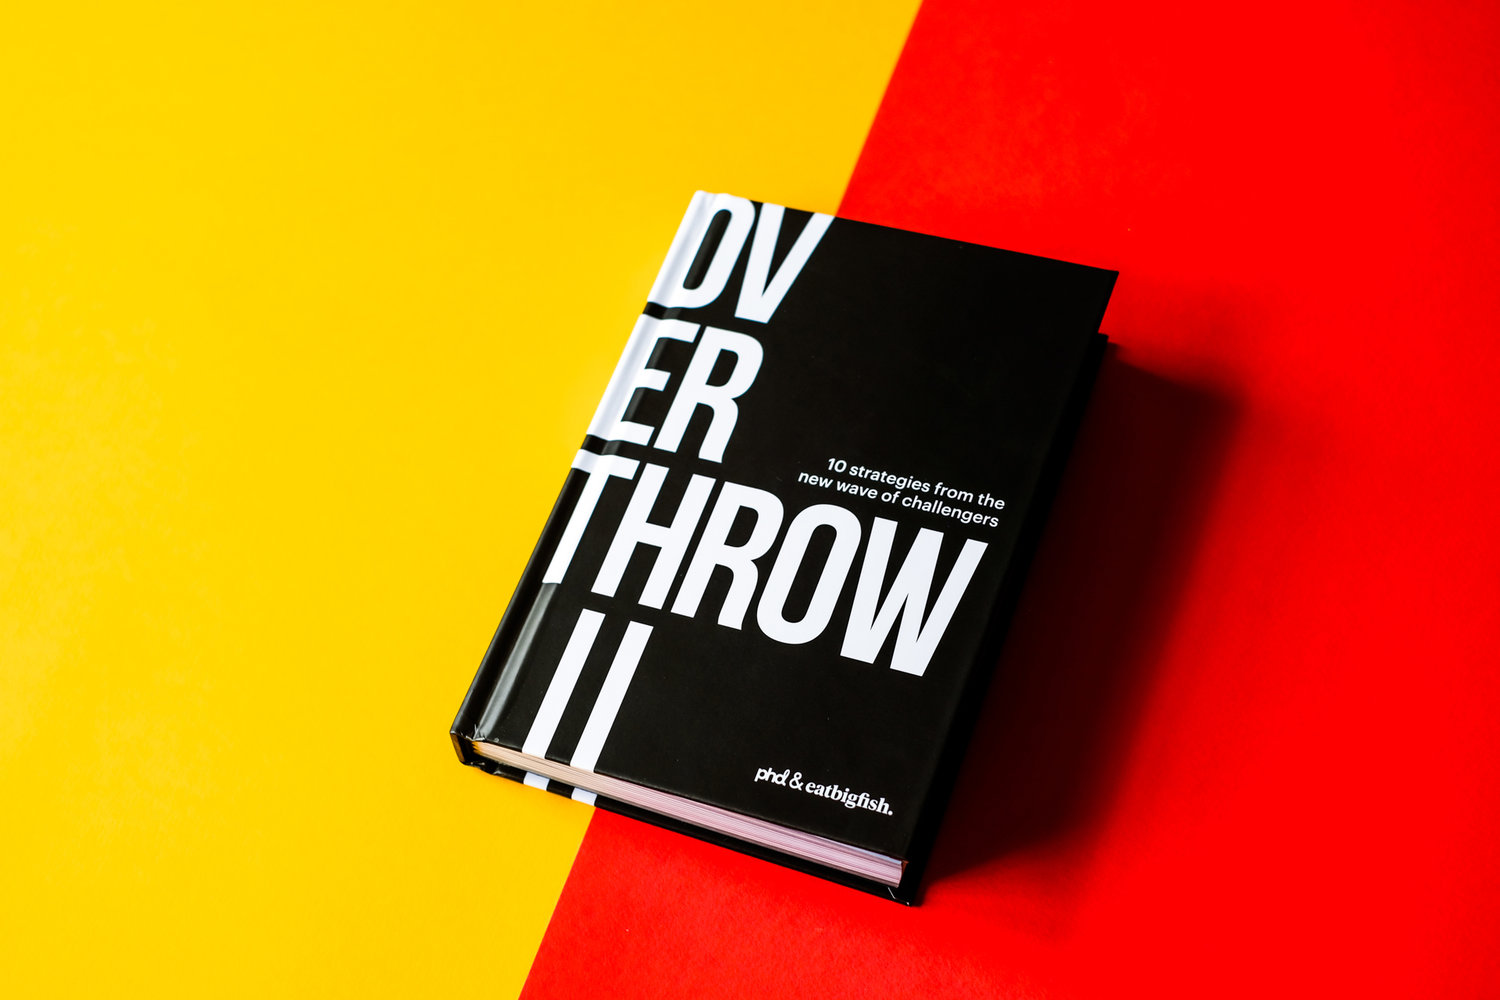 How To Use Overthrow Ii To Identify And Tell Your Challenger Story The Challenger Project The Home Of Challenger Brands